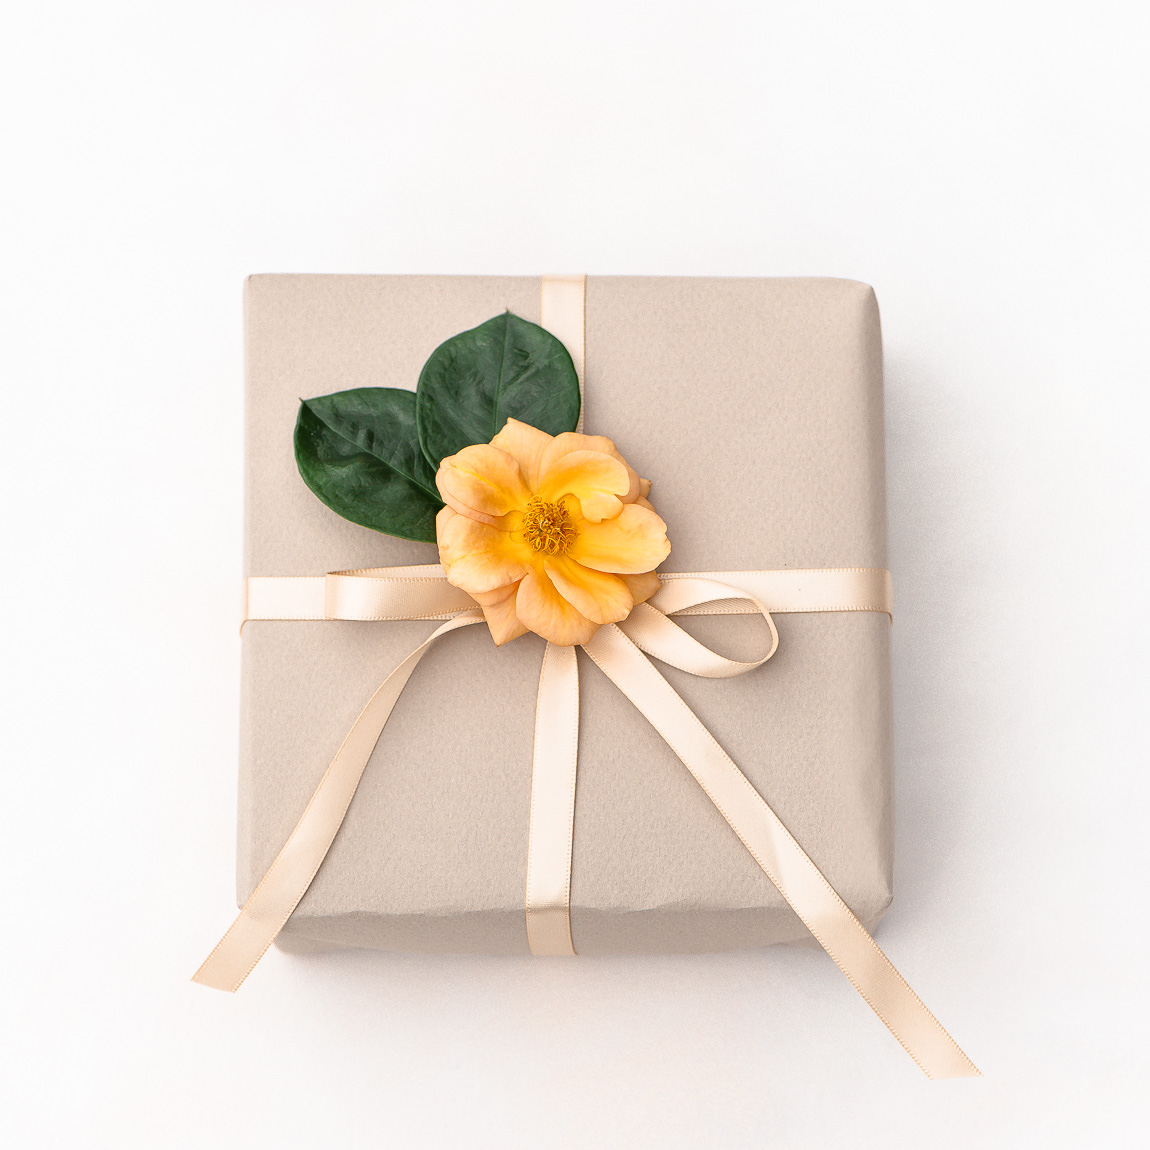 Gift wrapping with recyclable paper, reusable ribbon and flowers